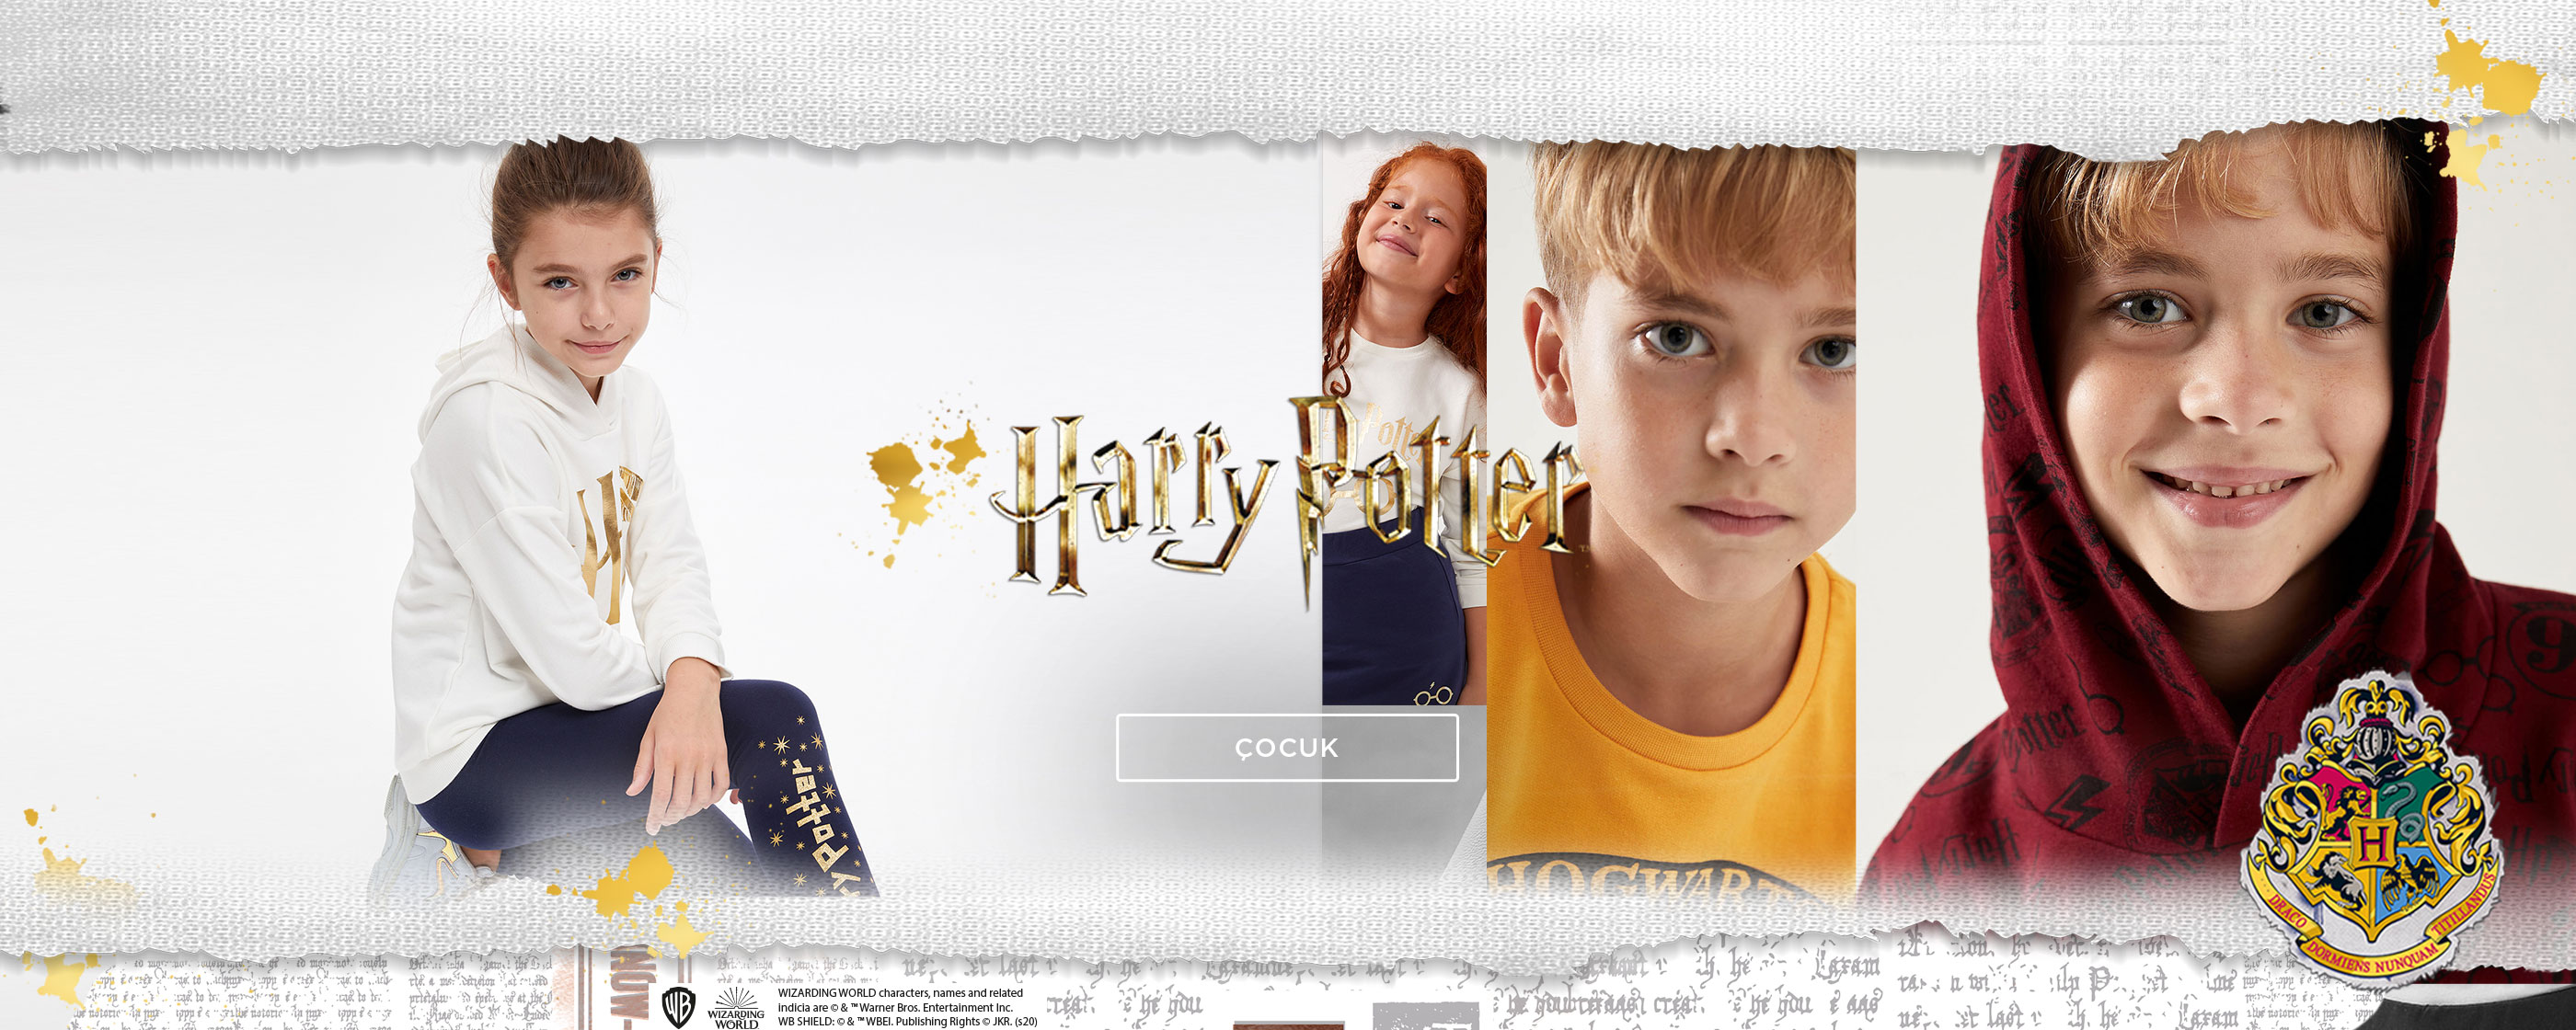 D_s1_harypotter_30102020